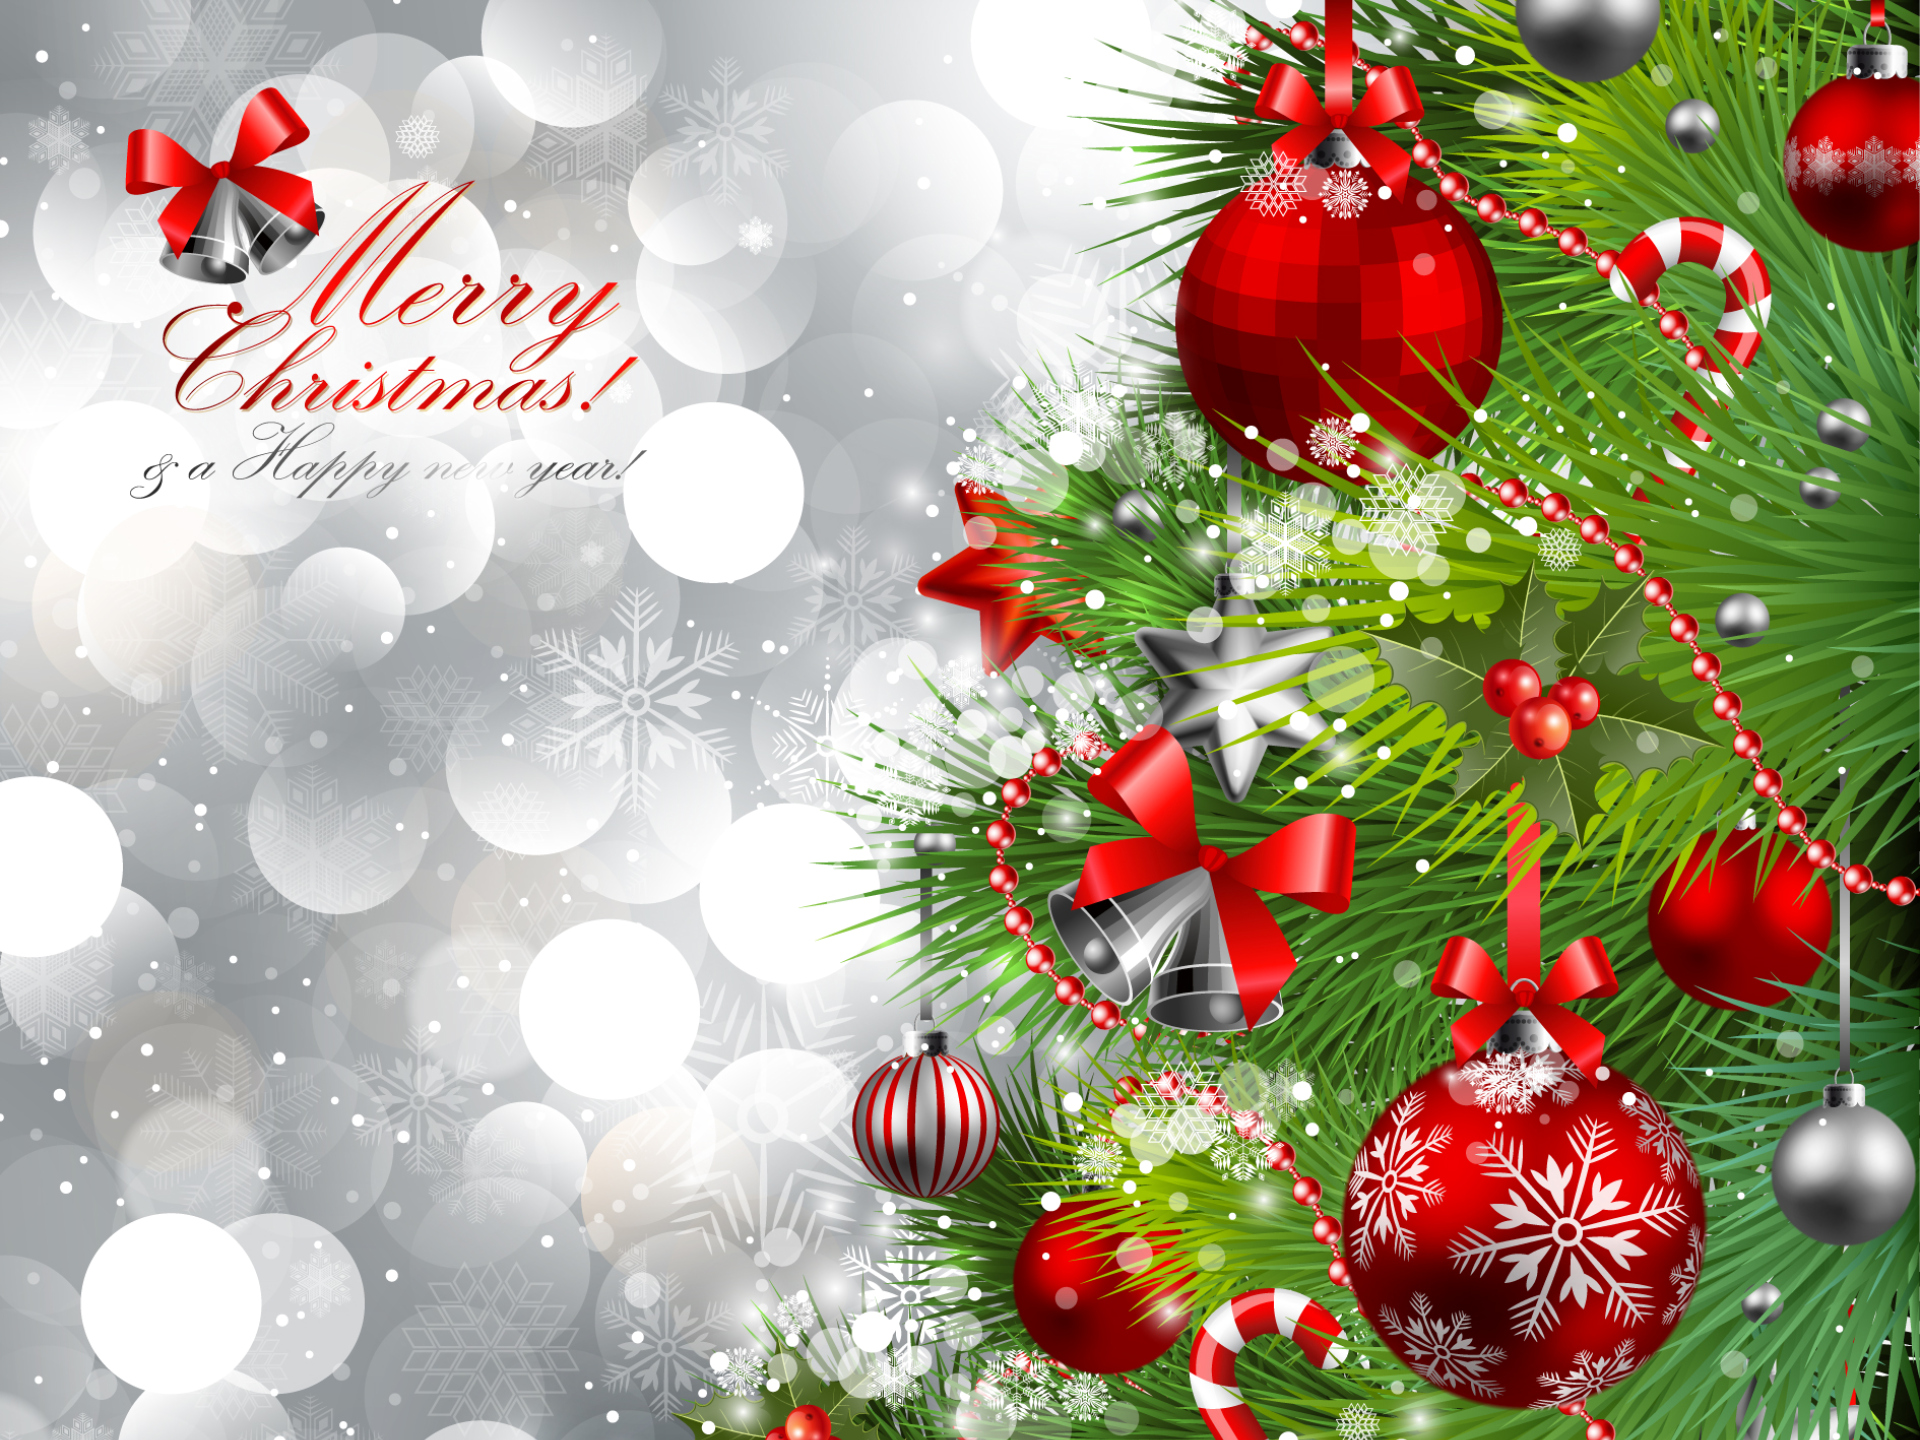 Merry Christmas Hd Wallpaper.57 Images Of Merry Christmas Wallpaper On Wallpapersafari